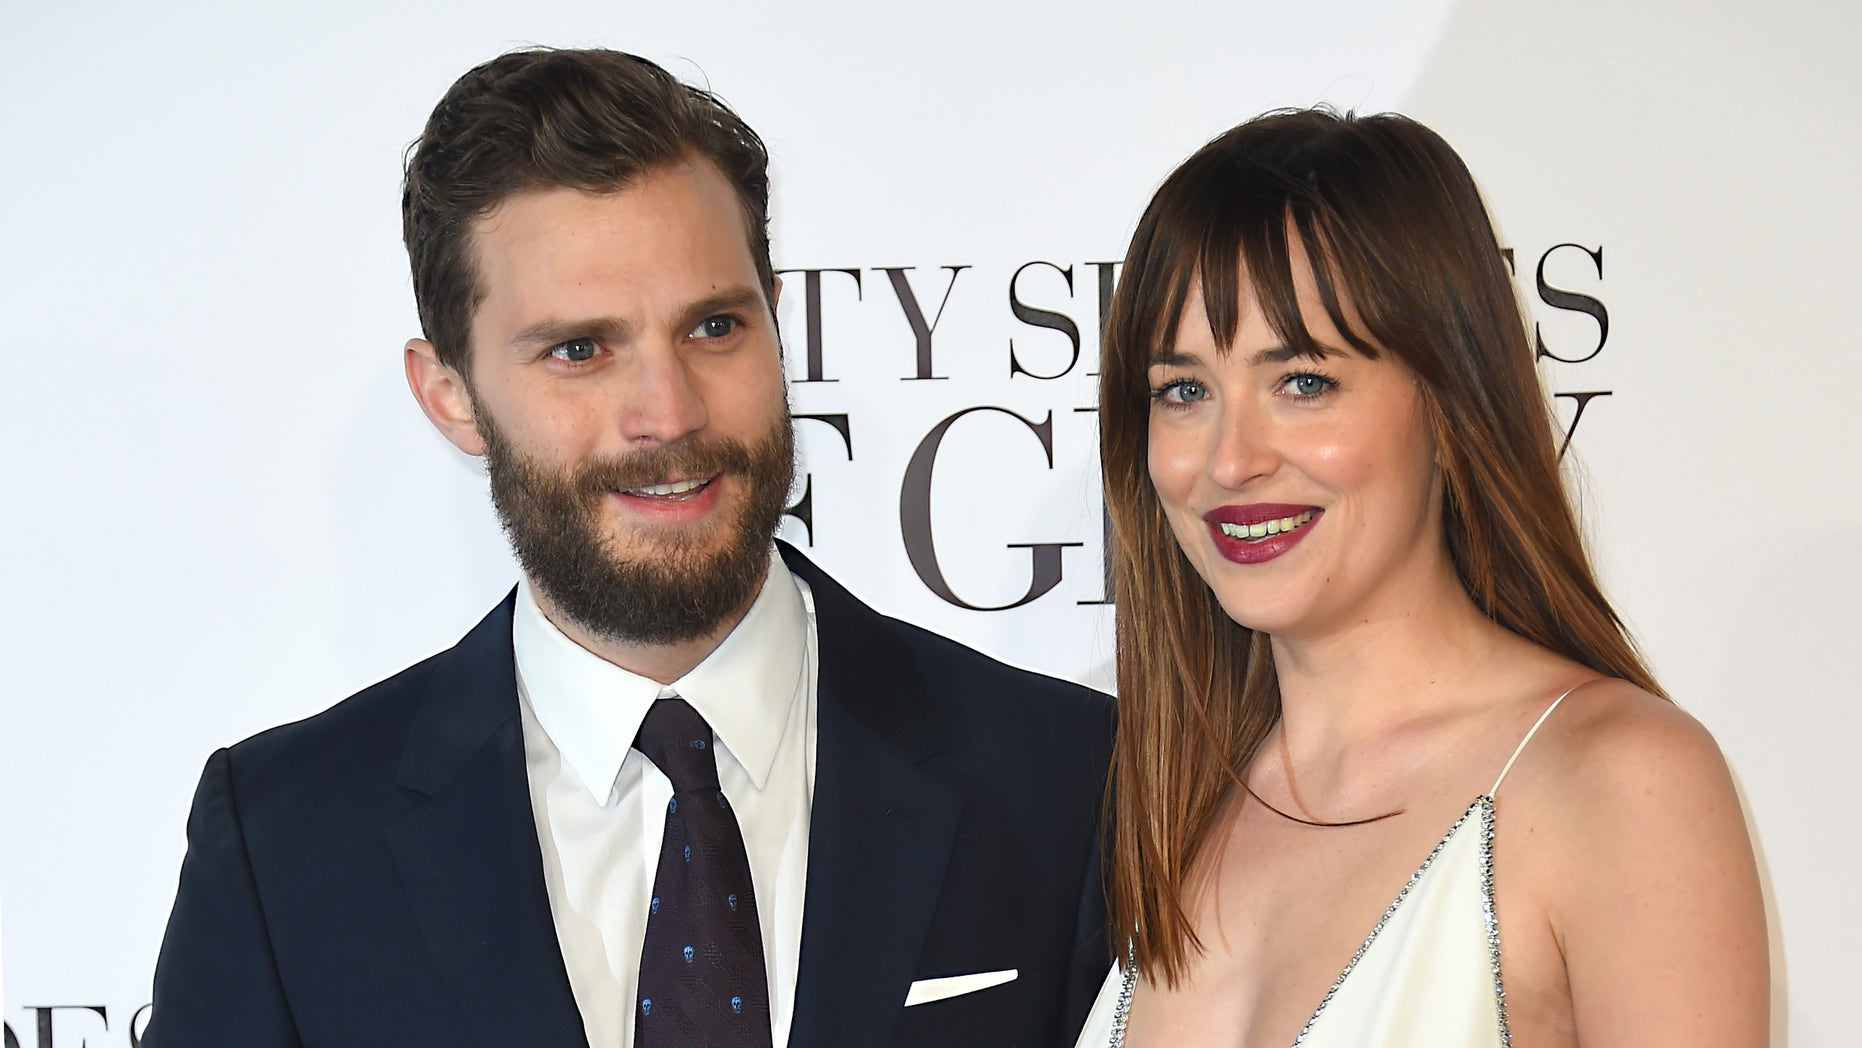 """Feb 12, 2015. Dakota Johnson, right, and Jamie Dornan pose for photographers at the UK Premiere of  """"Fifty Shades of Grey"""" in London."""